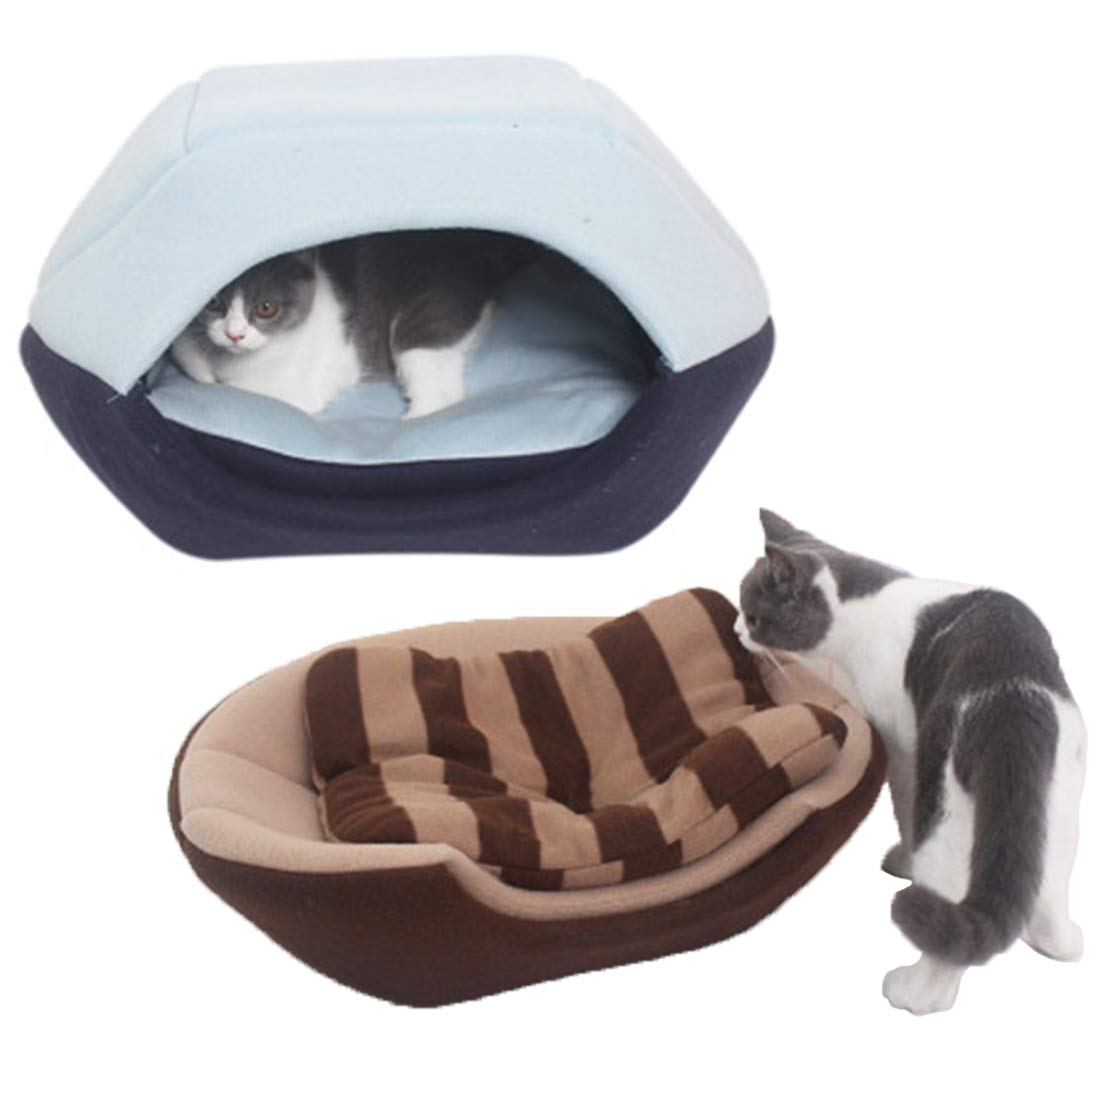 A Zhyaj Dog Kennel Foldable Cat Dog Bed House Super Soft Animals Kitten Puppy Cave Sleeping Mat Pad Nest Kennel Or Bed Dog House 2PCS,A